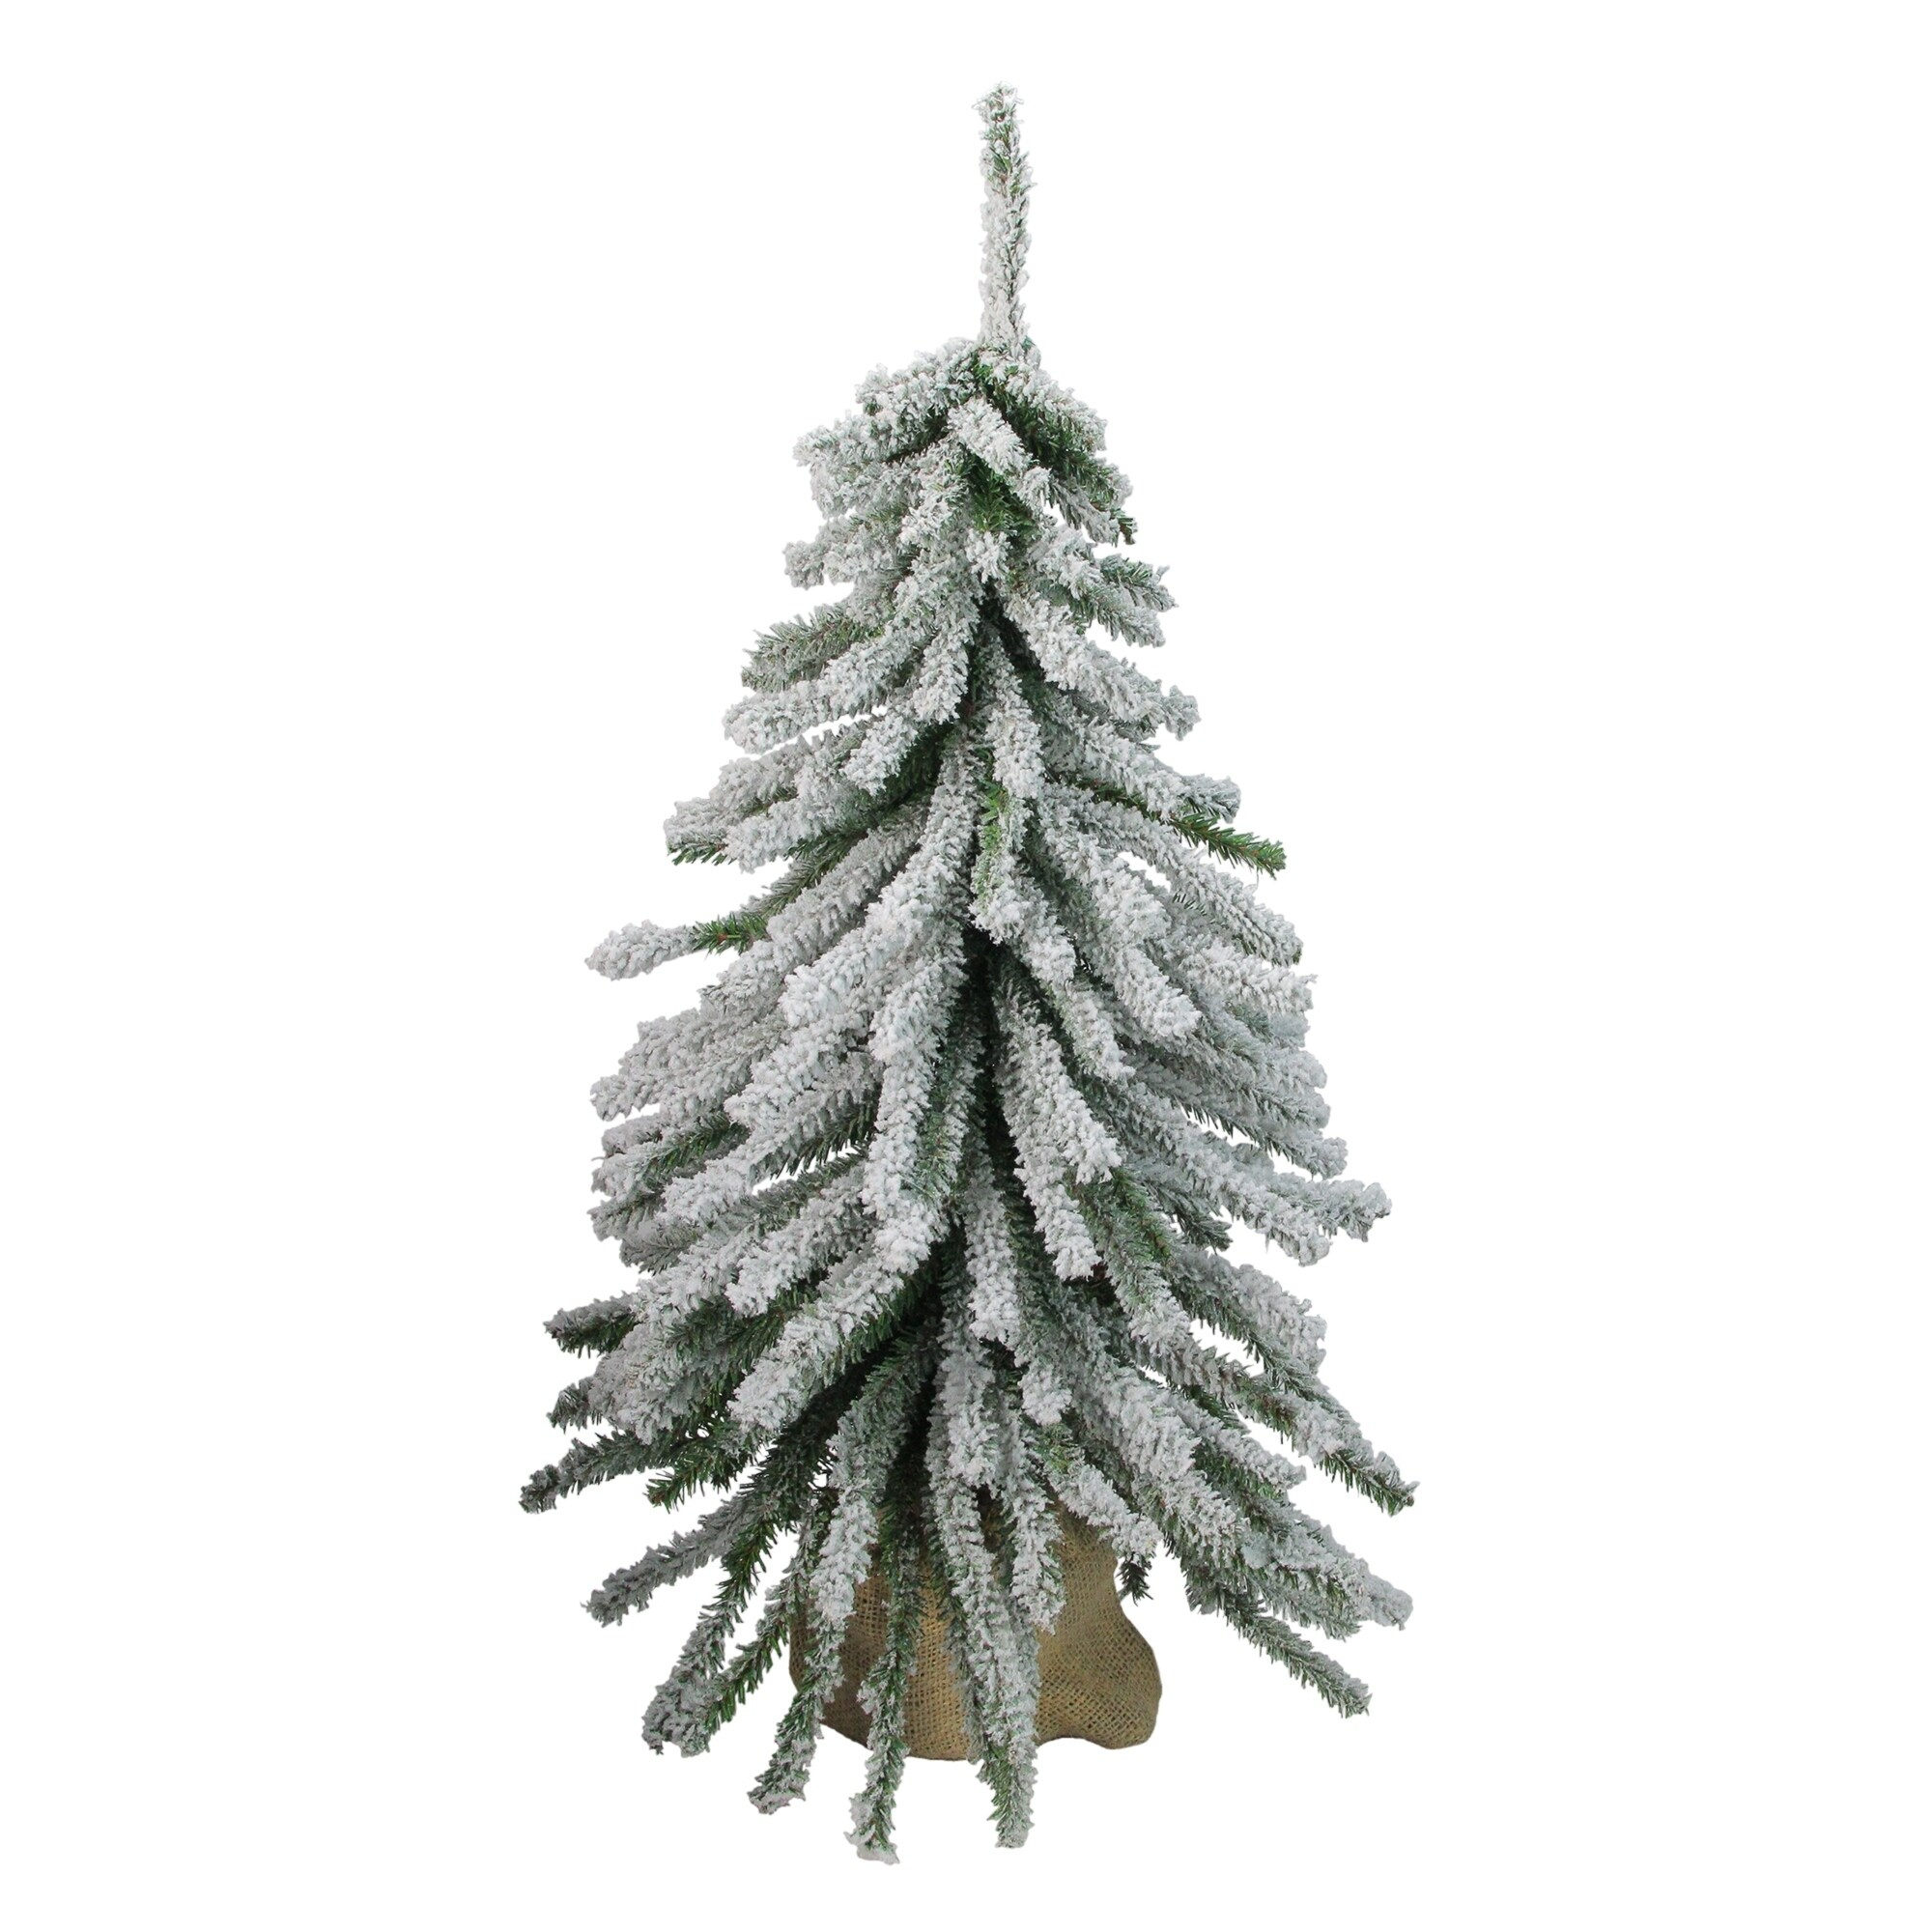 2 Flocked Downswept Mini Village Pine Artificial Christmas Tree In Burlap Base Unlit